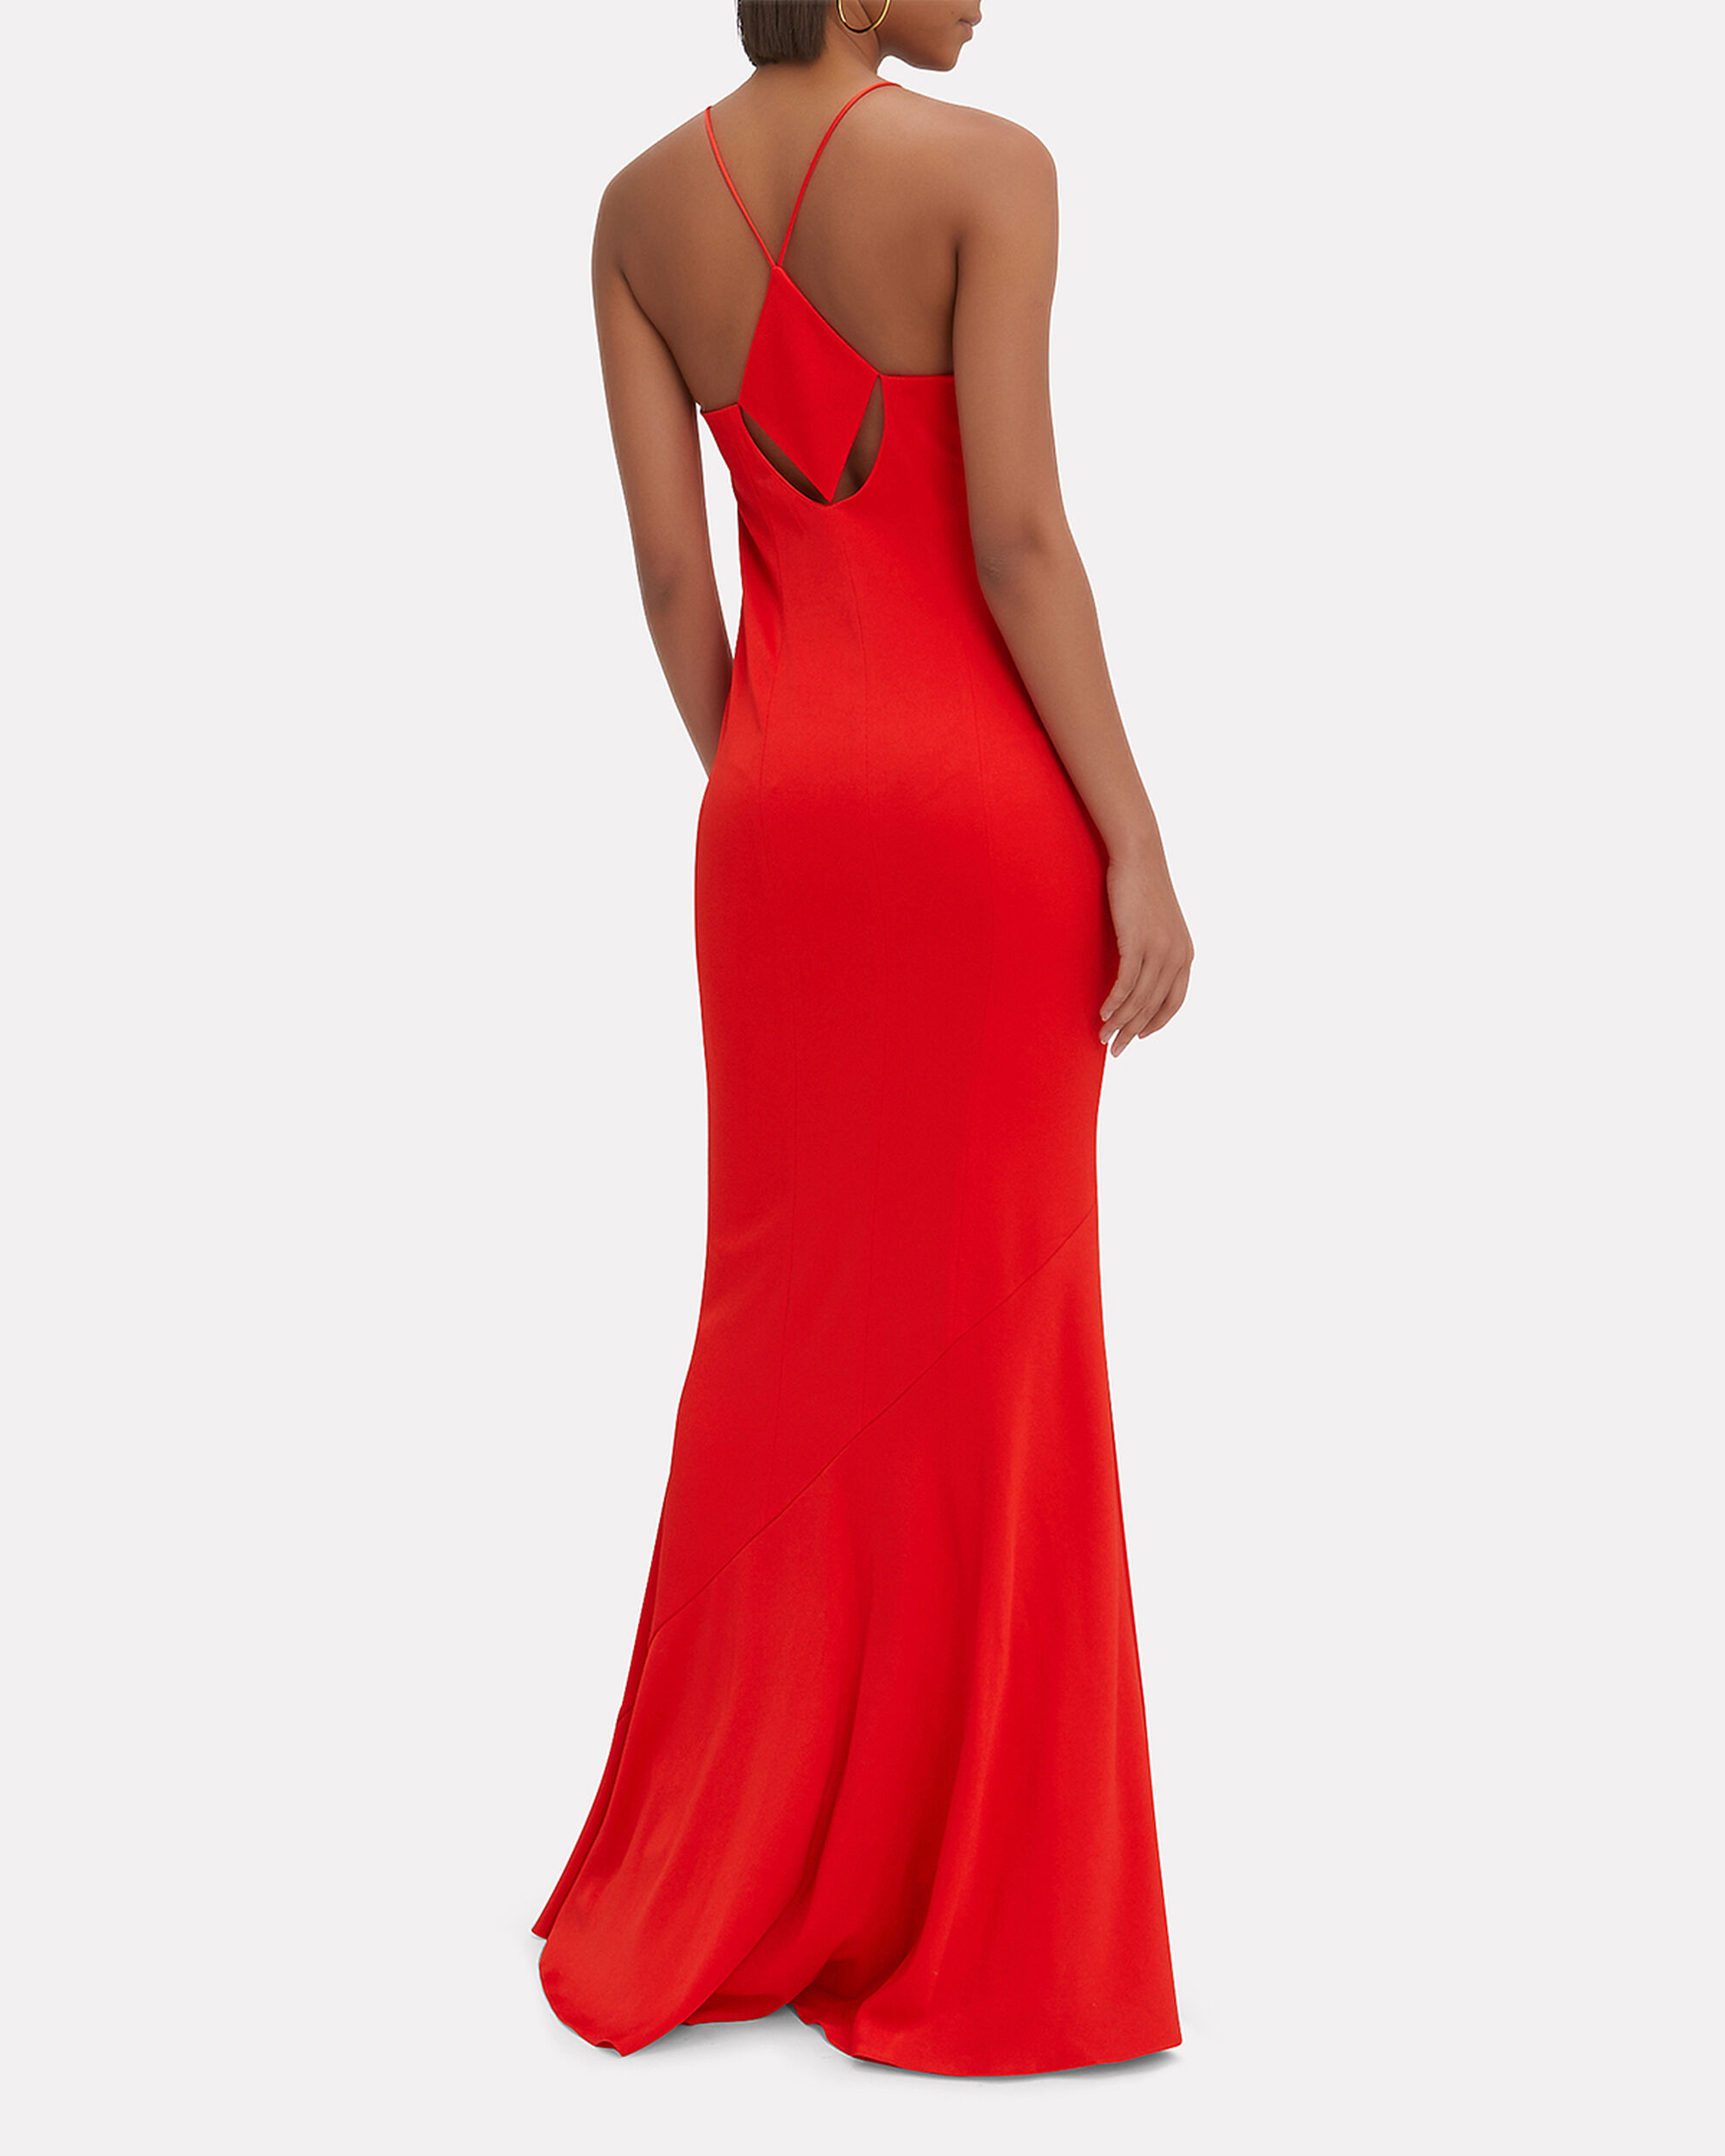 Diamond Cutout Red Dress, RED, hi-res